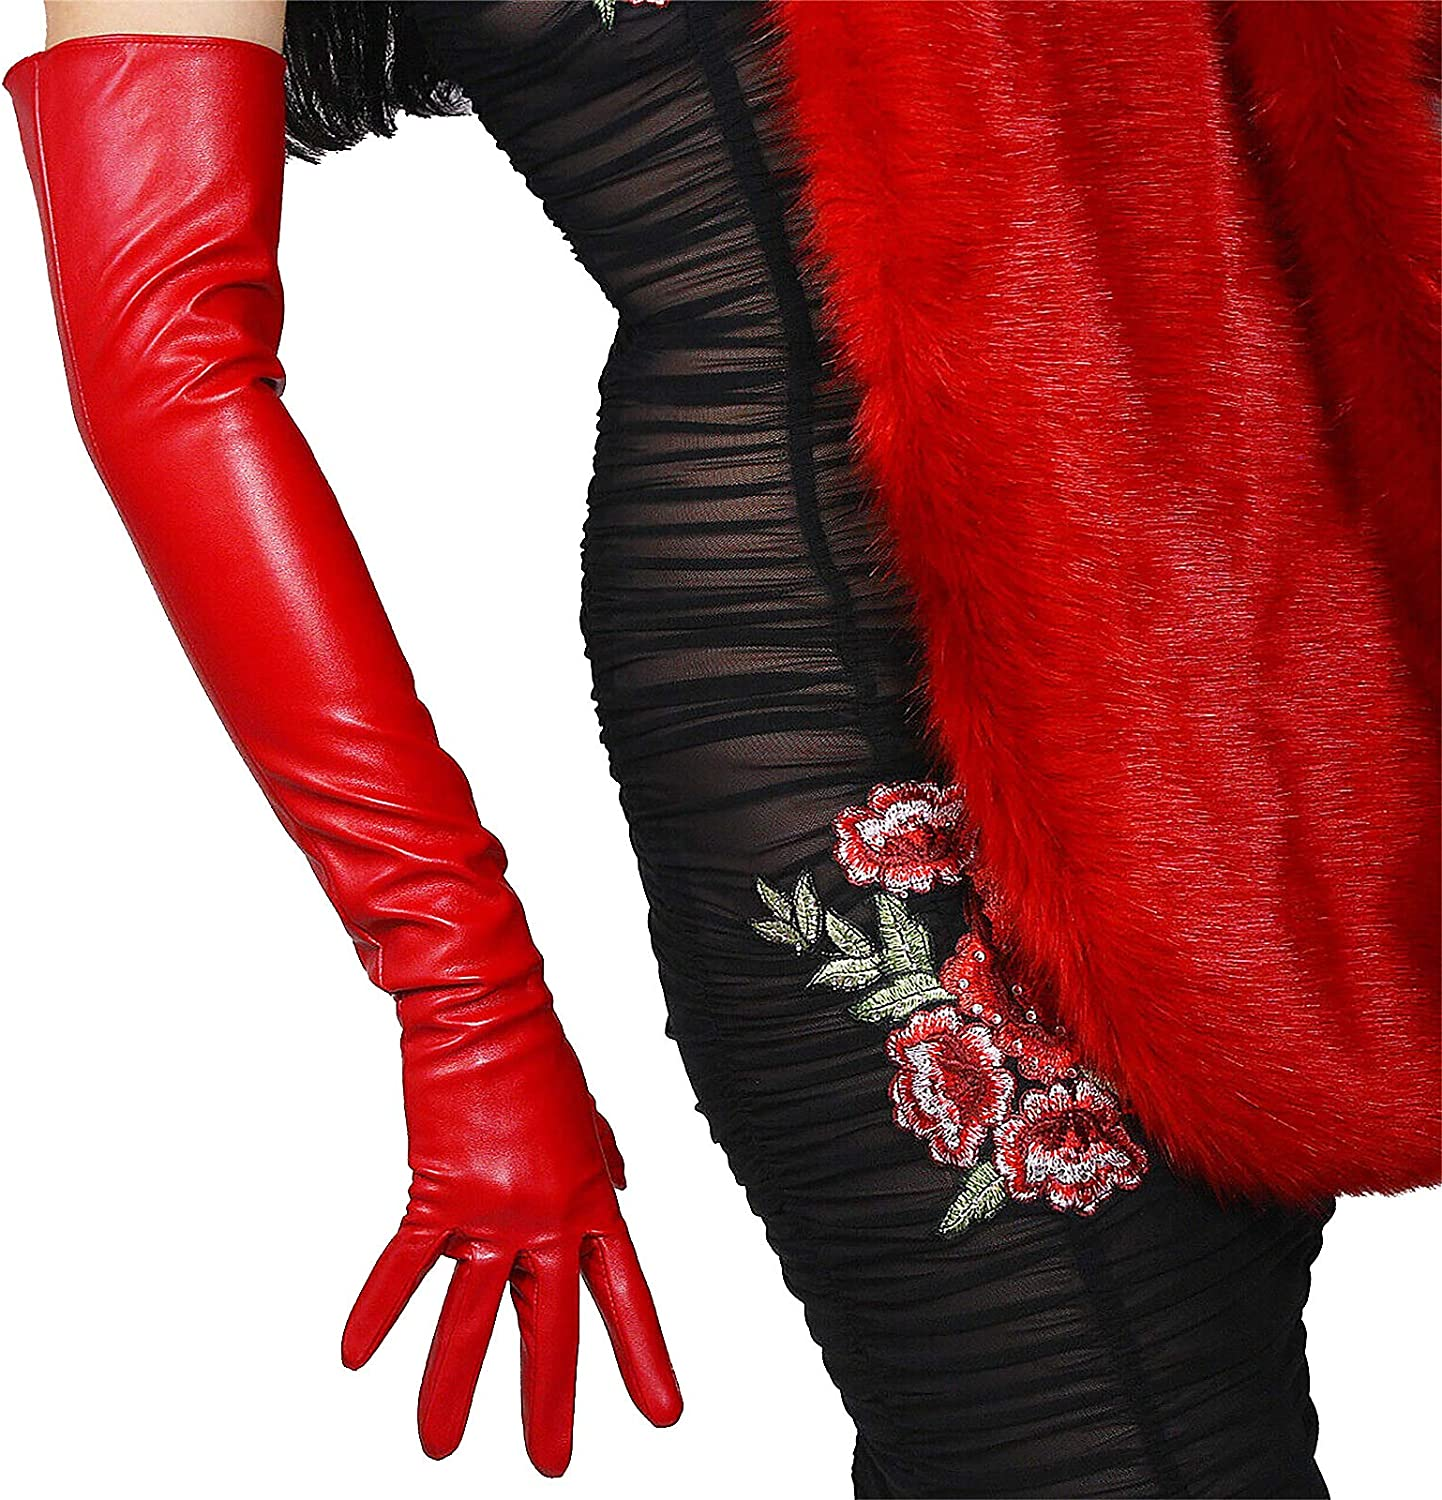 GooDay Women's Red Opera Length Leather Gloves Faux Lambskin Handmade 24 inches